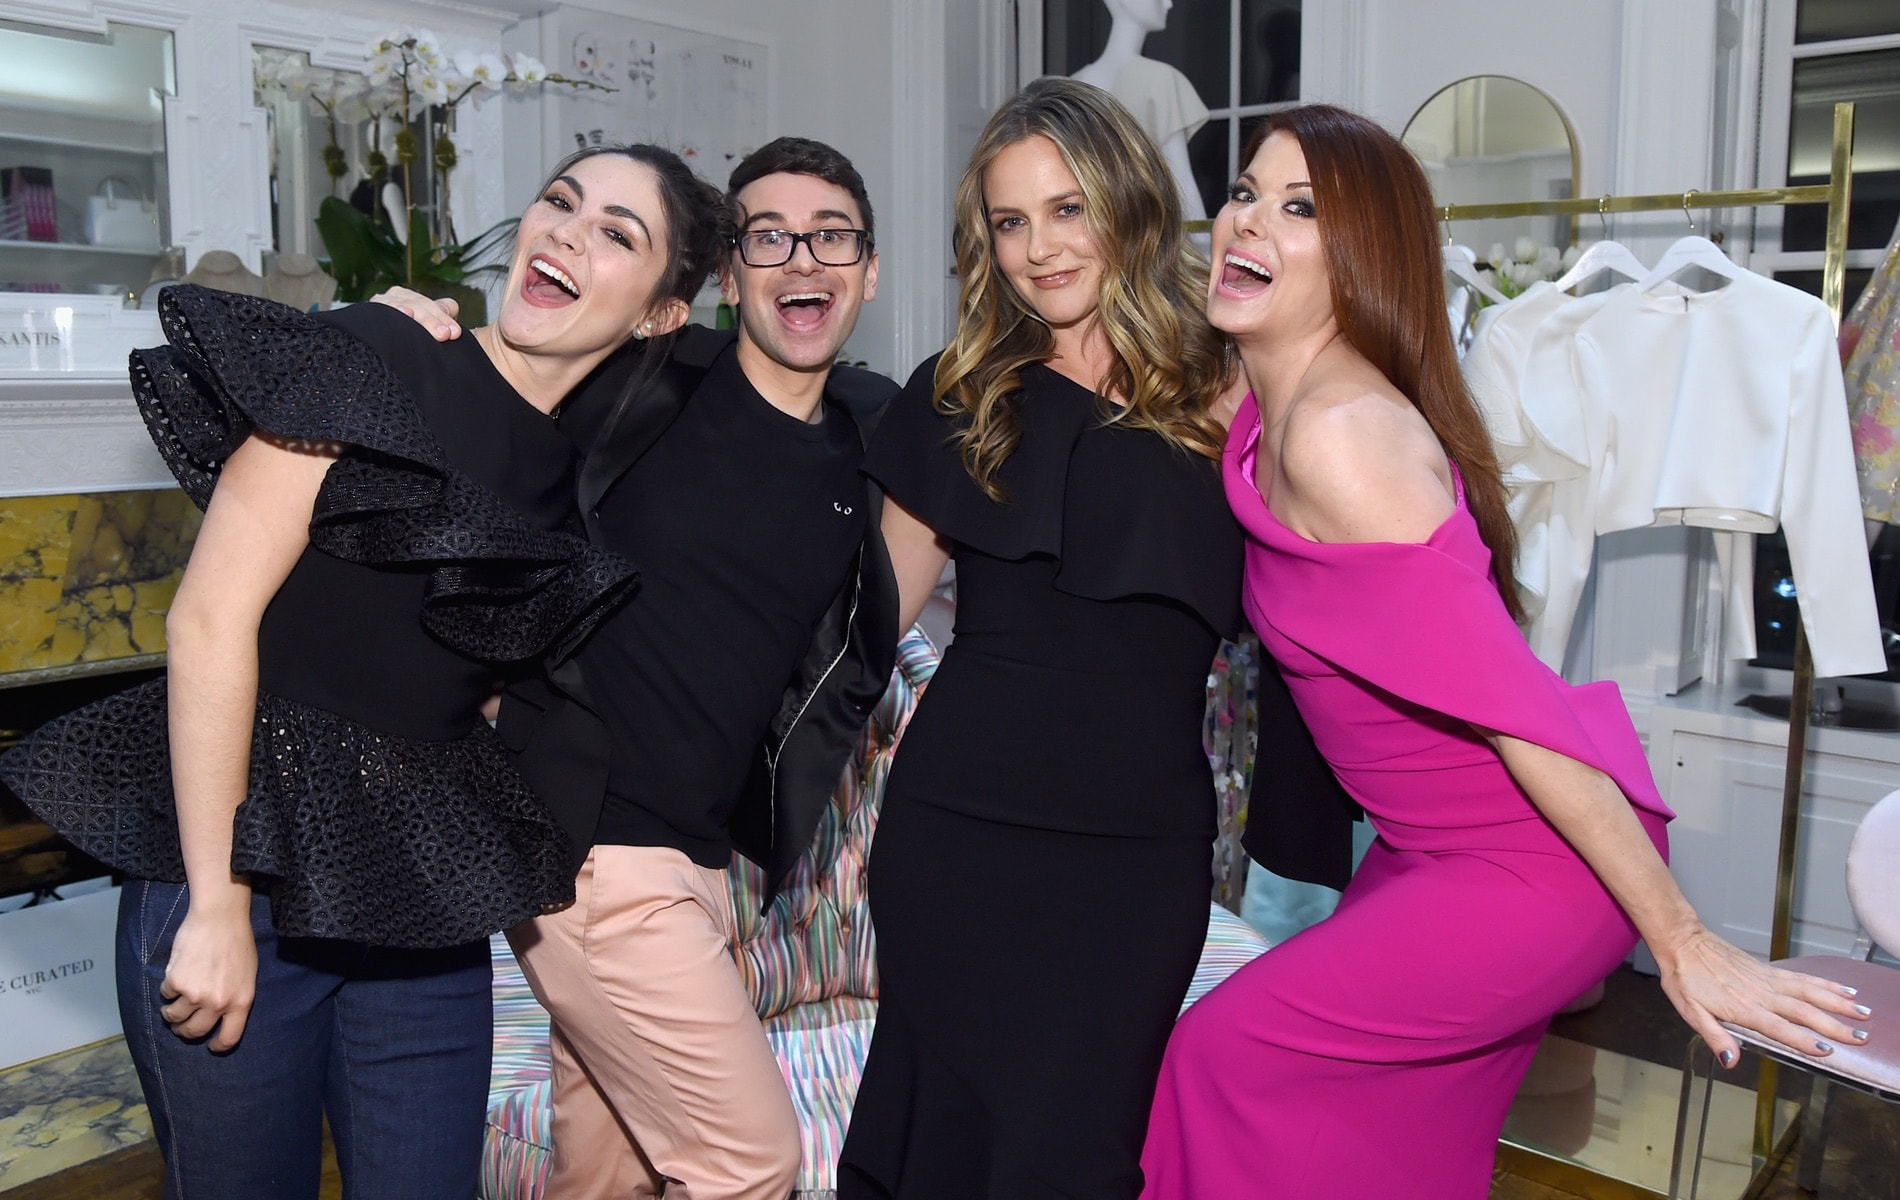 Isabelle Fuhrman, Christian Siriano, Alicia Silverstone and Debra Messing attend the opening of Christian Siriano's new store, The Curated NYC, hosted by Alicia Silverstone and sponsored by VIE Magazine on April 17, 2018, in New York City. Photo by Jamie McCarthy/Getty Images for Christian Siriano